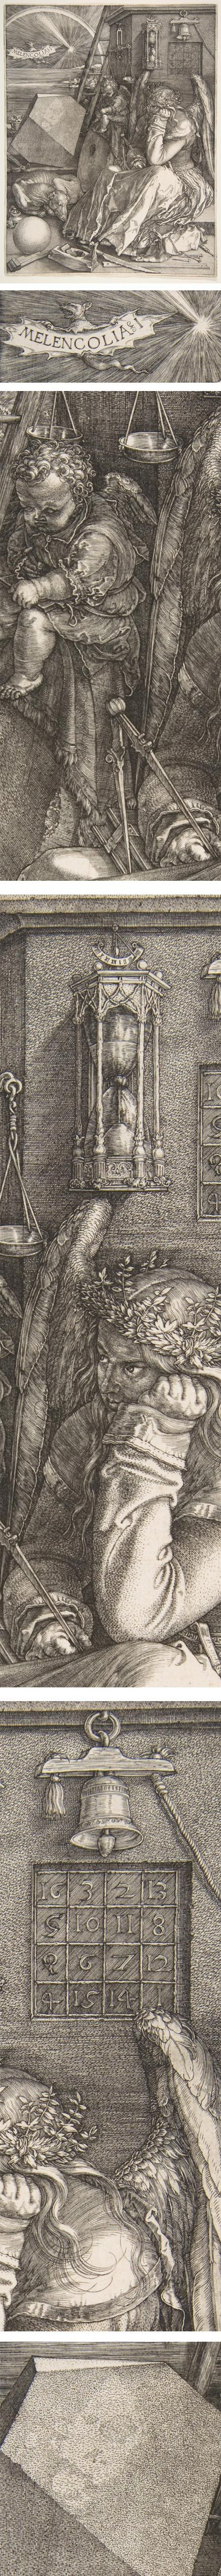 """One of the most iconic engravings by one of art's great printmakers, Melelcolia (an archaic spelling of melancholia) is filled with symbols of alchemy and carpentry (architecture), along with various measuring tools, an hourglass, a polyhedron and a """"magic square"""" — the rows of which add up to 34 in all directions.:"""